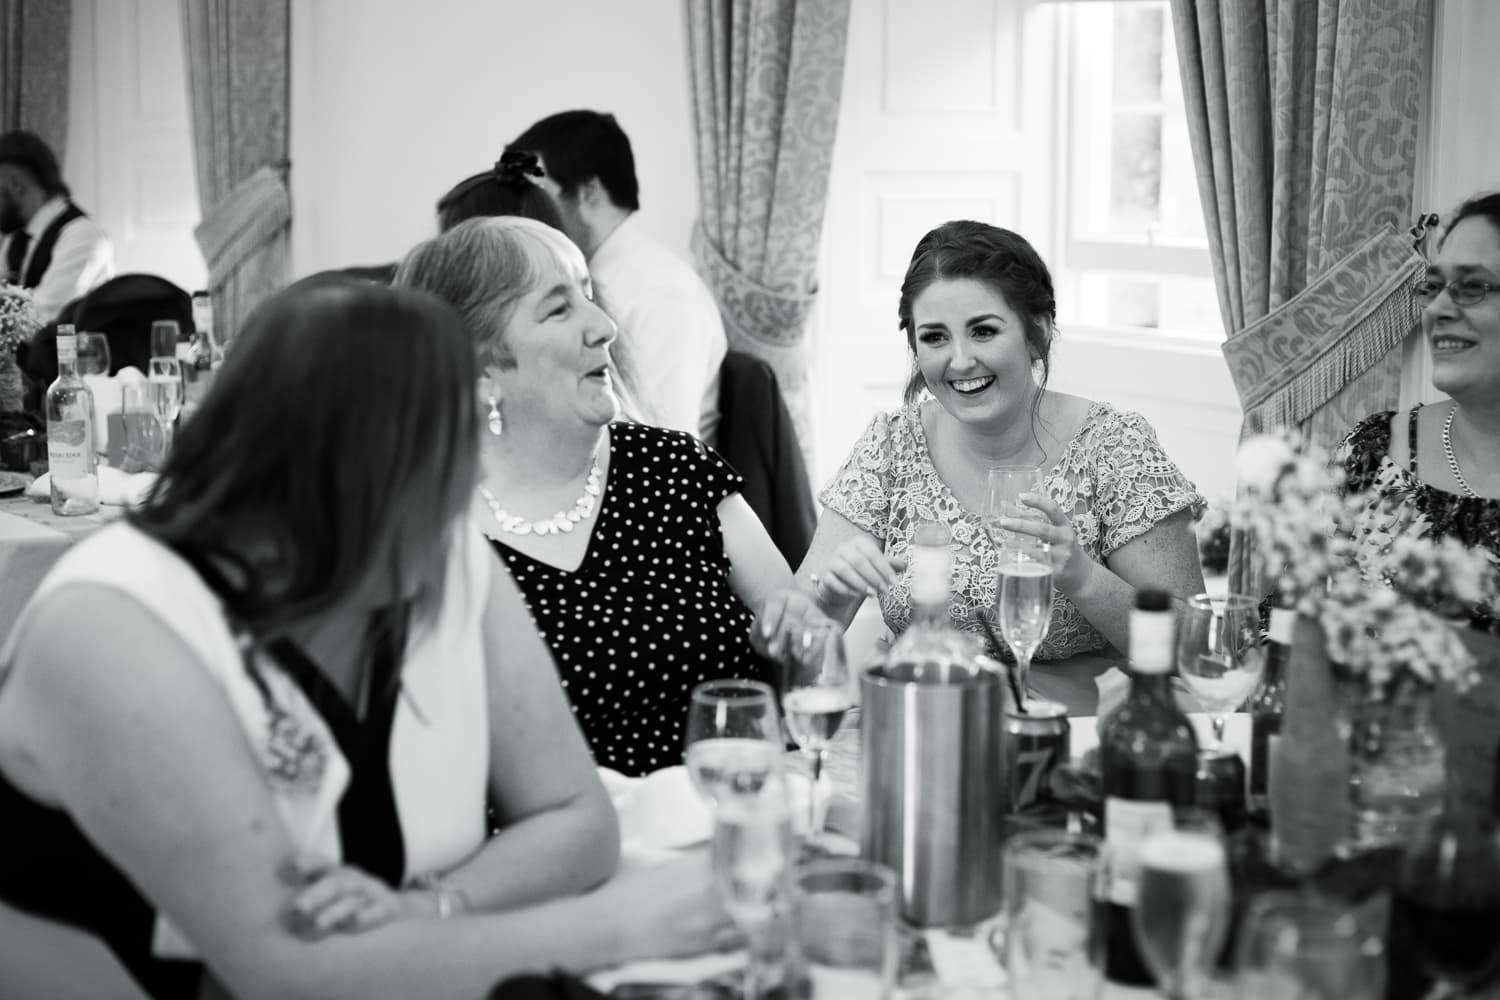 Hexham Abbey Wedding, laughing guest